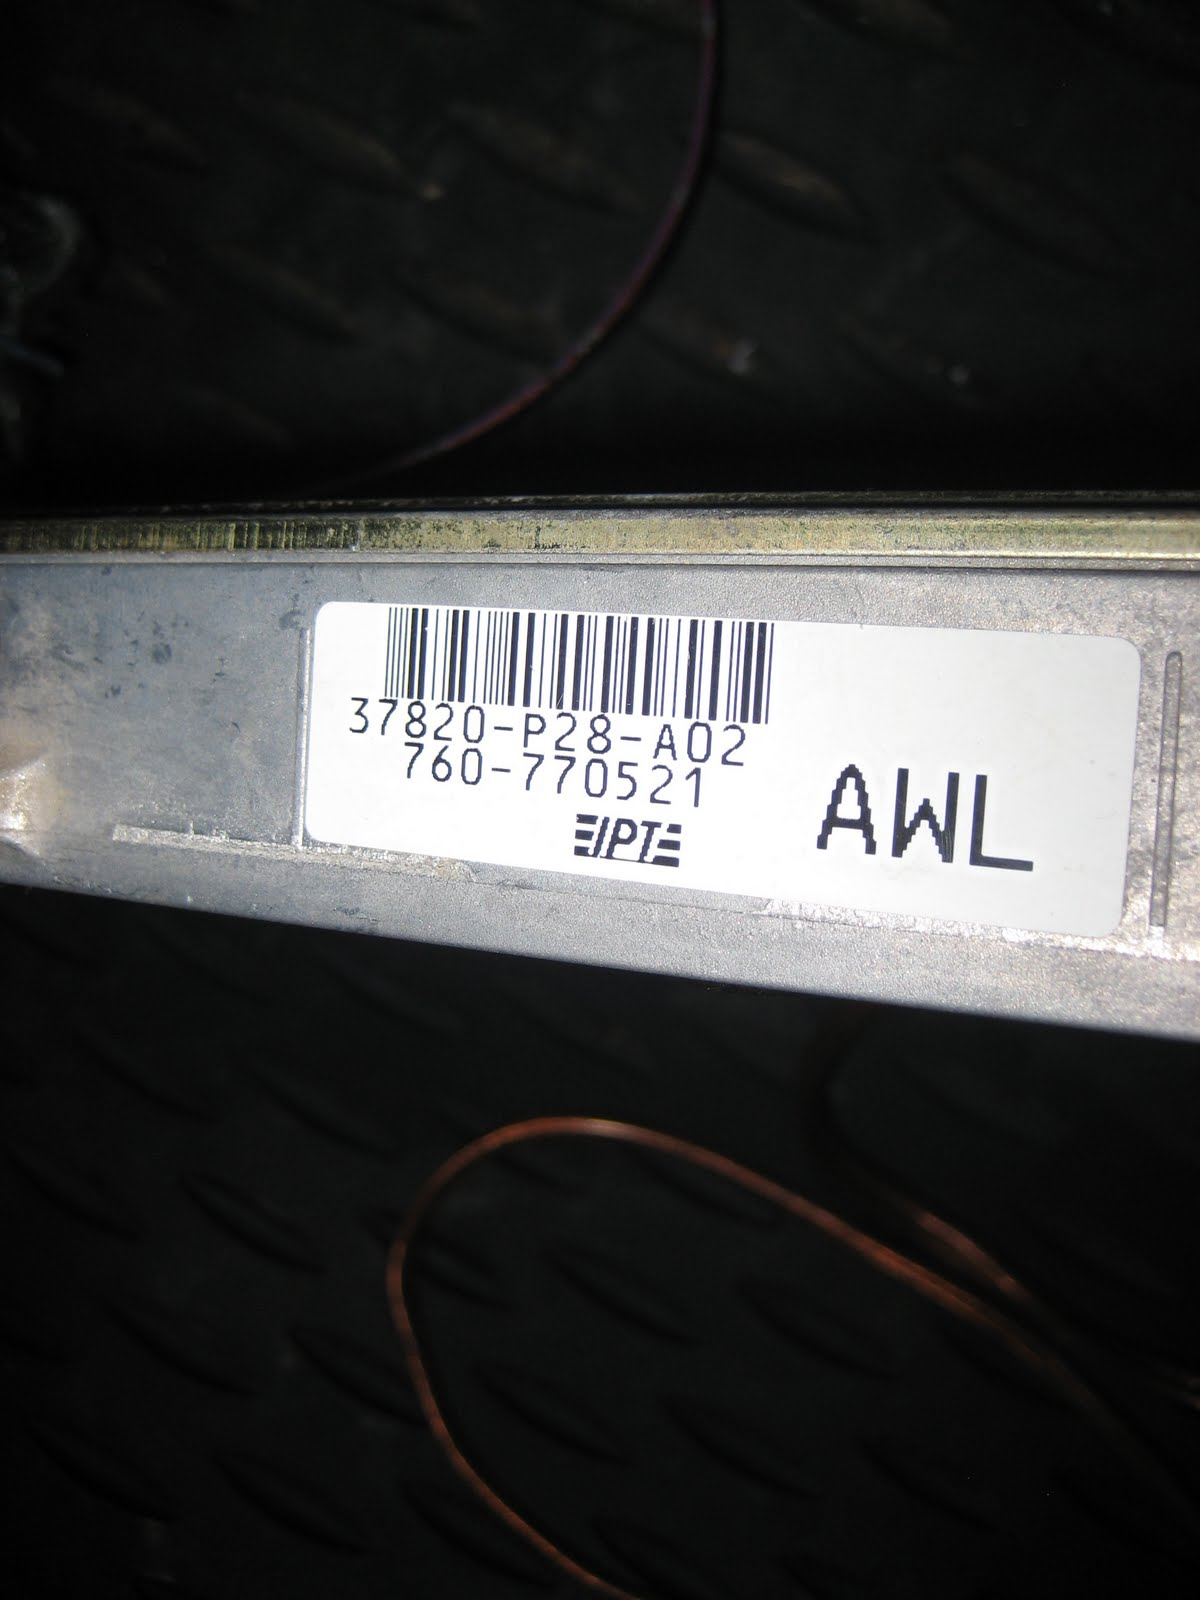 Socketed P28 Ecu Honda P07 Wiring Diagram Find Great Deals On Ebay For In Engine Re Furbished Obd1 Vtec That Has Been Chipped This Can Be Used A P72